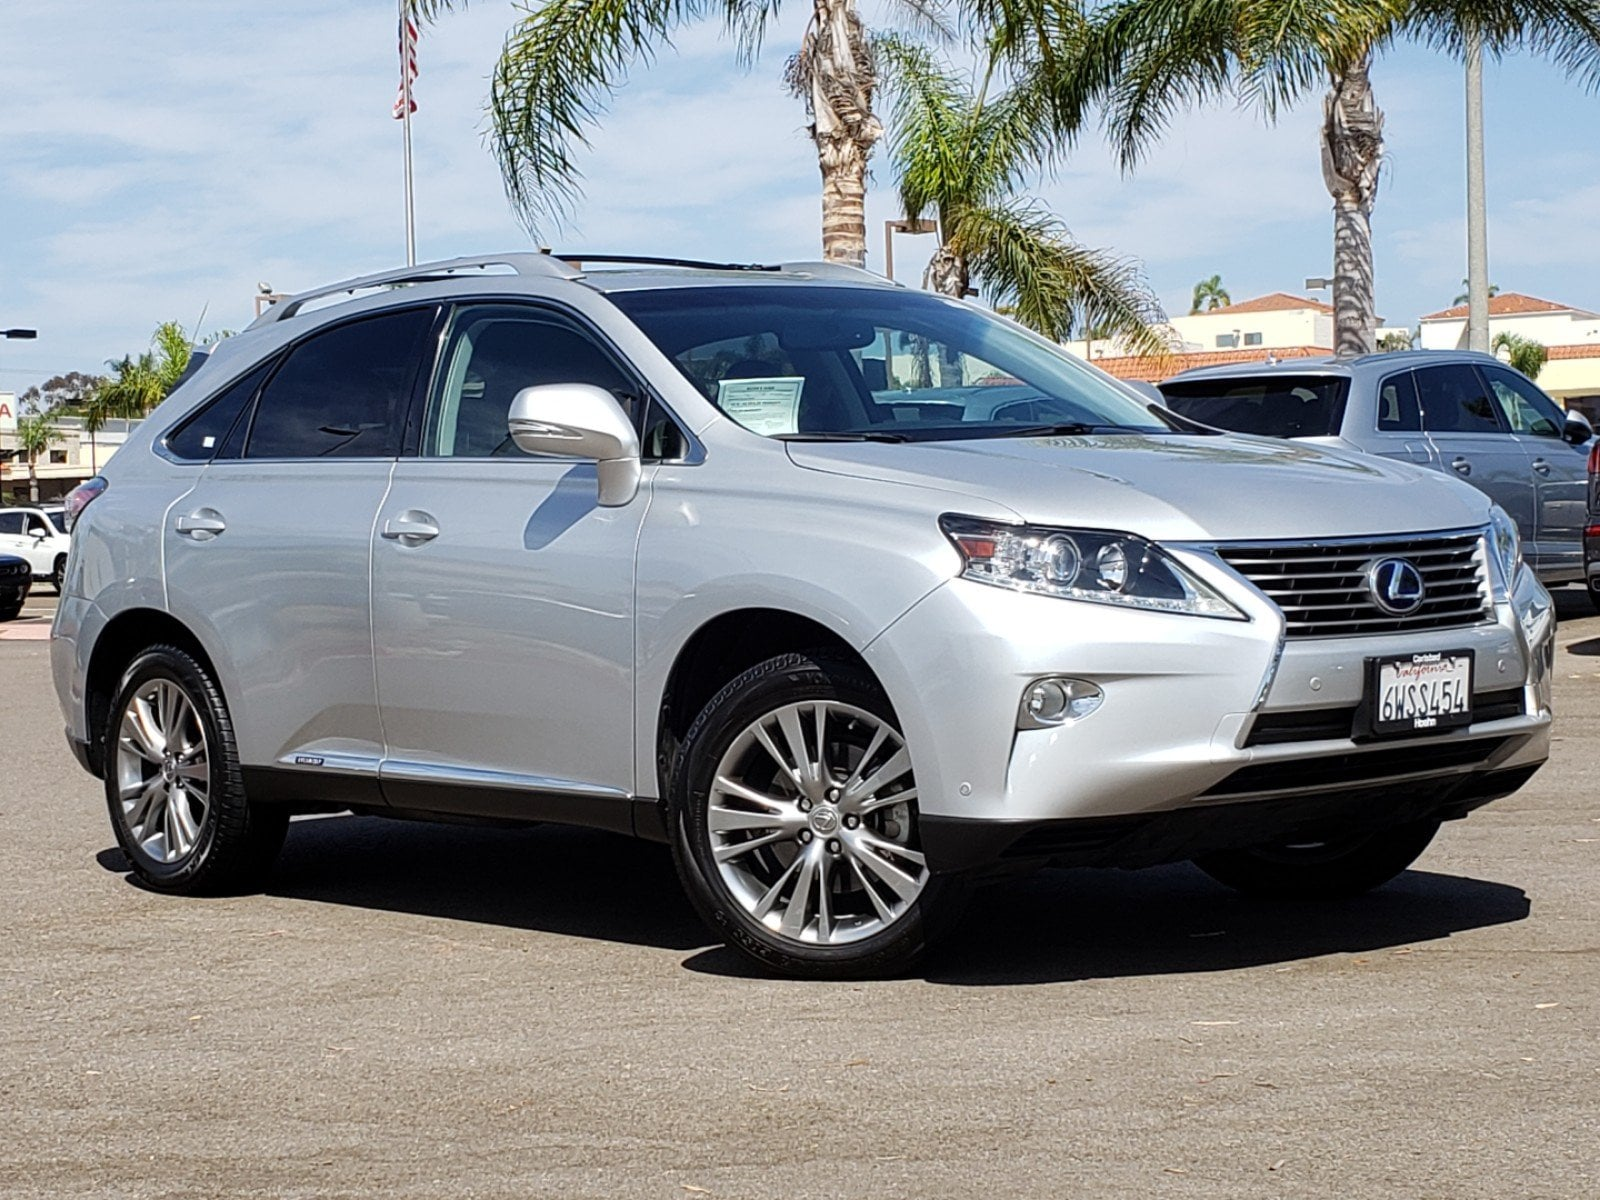 Pre-Owned 2013 Lexus RX450H Base